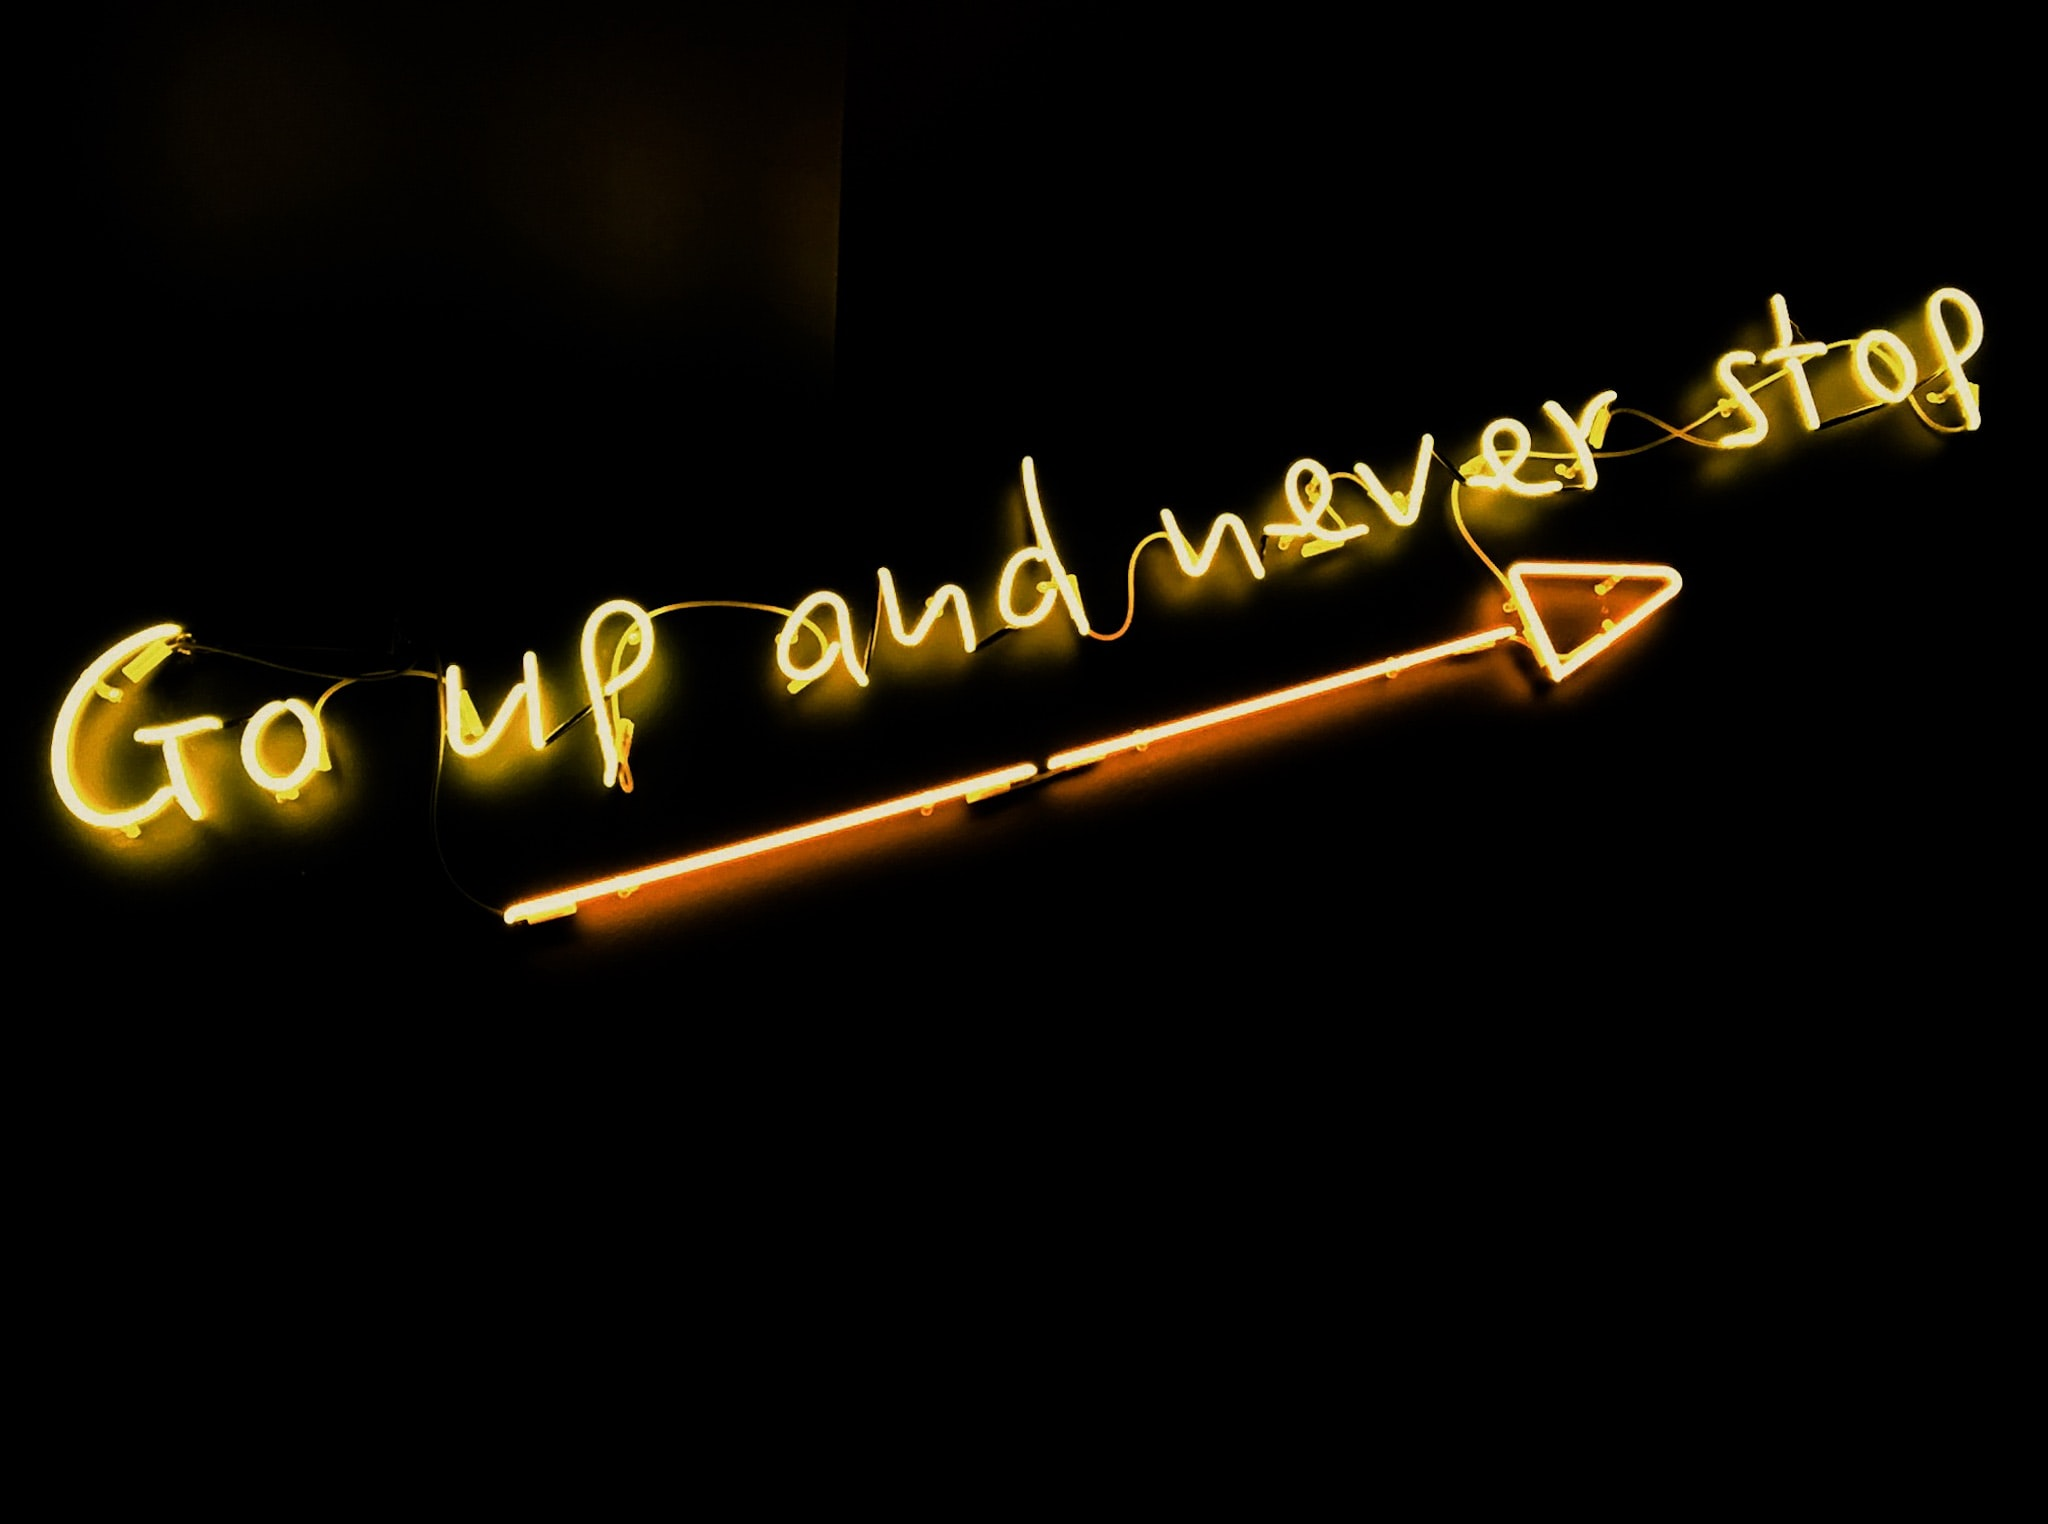 """A yellow """"Go up and never stop"""" neon with a long arrow against a black background"""